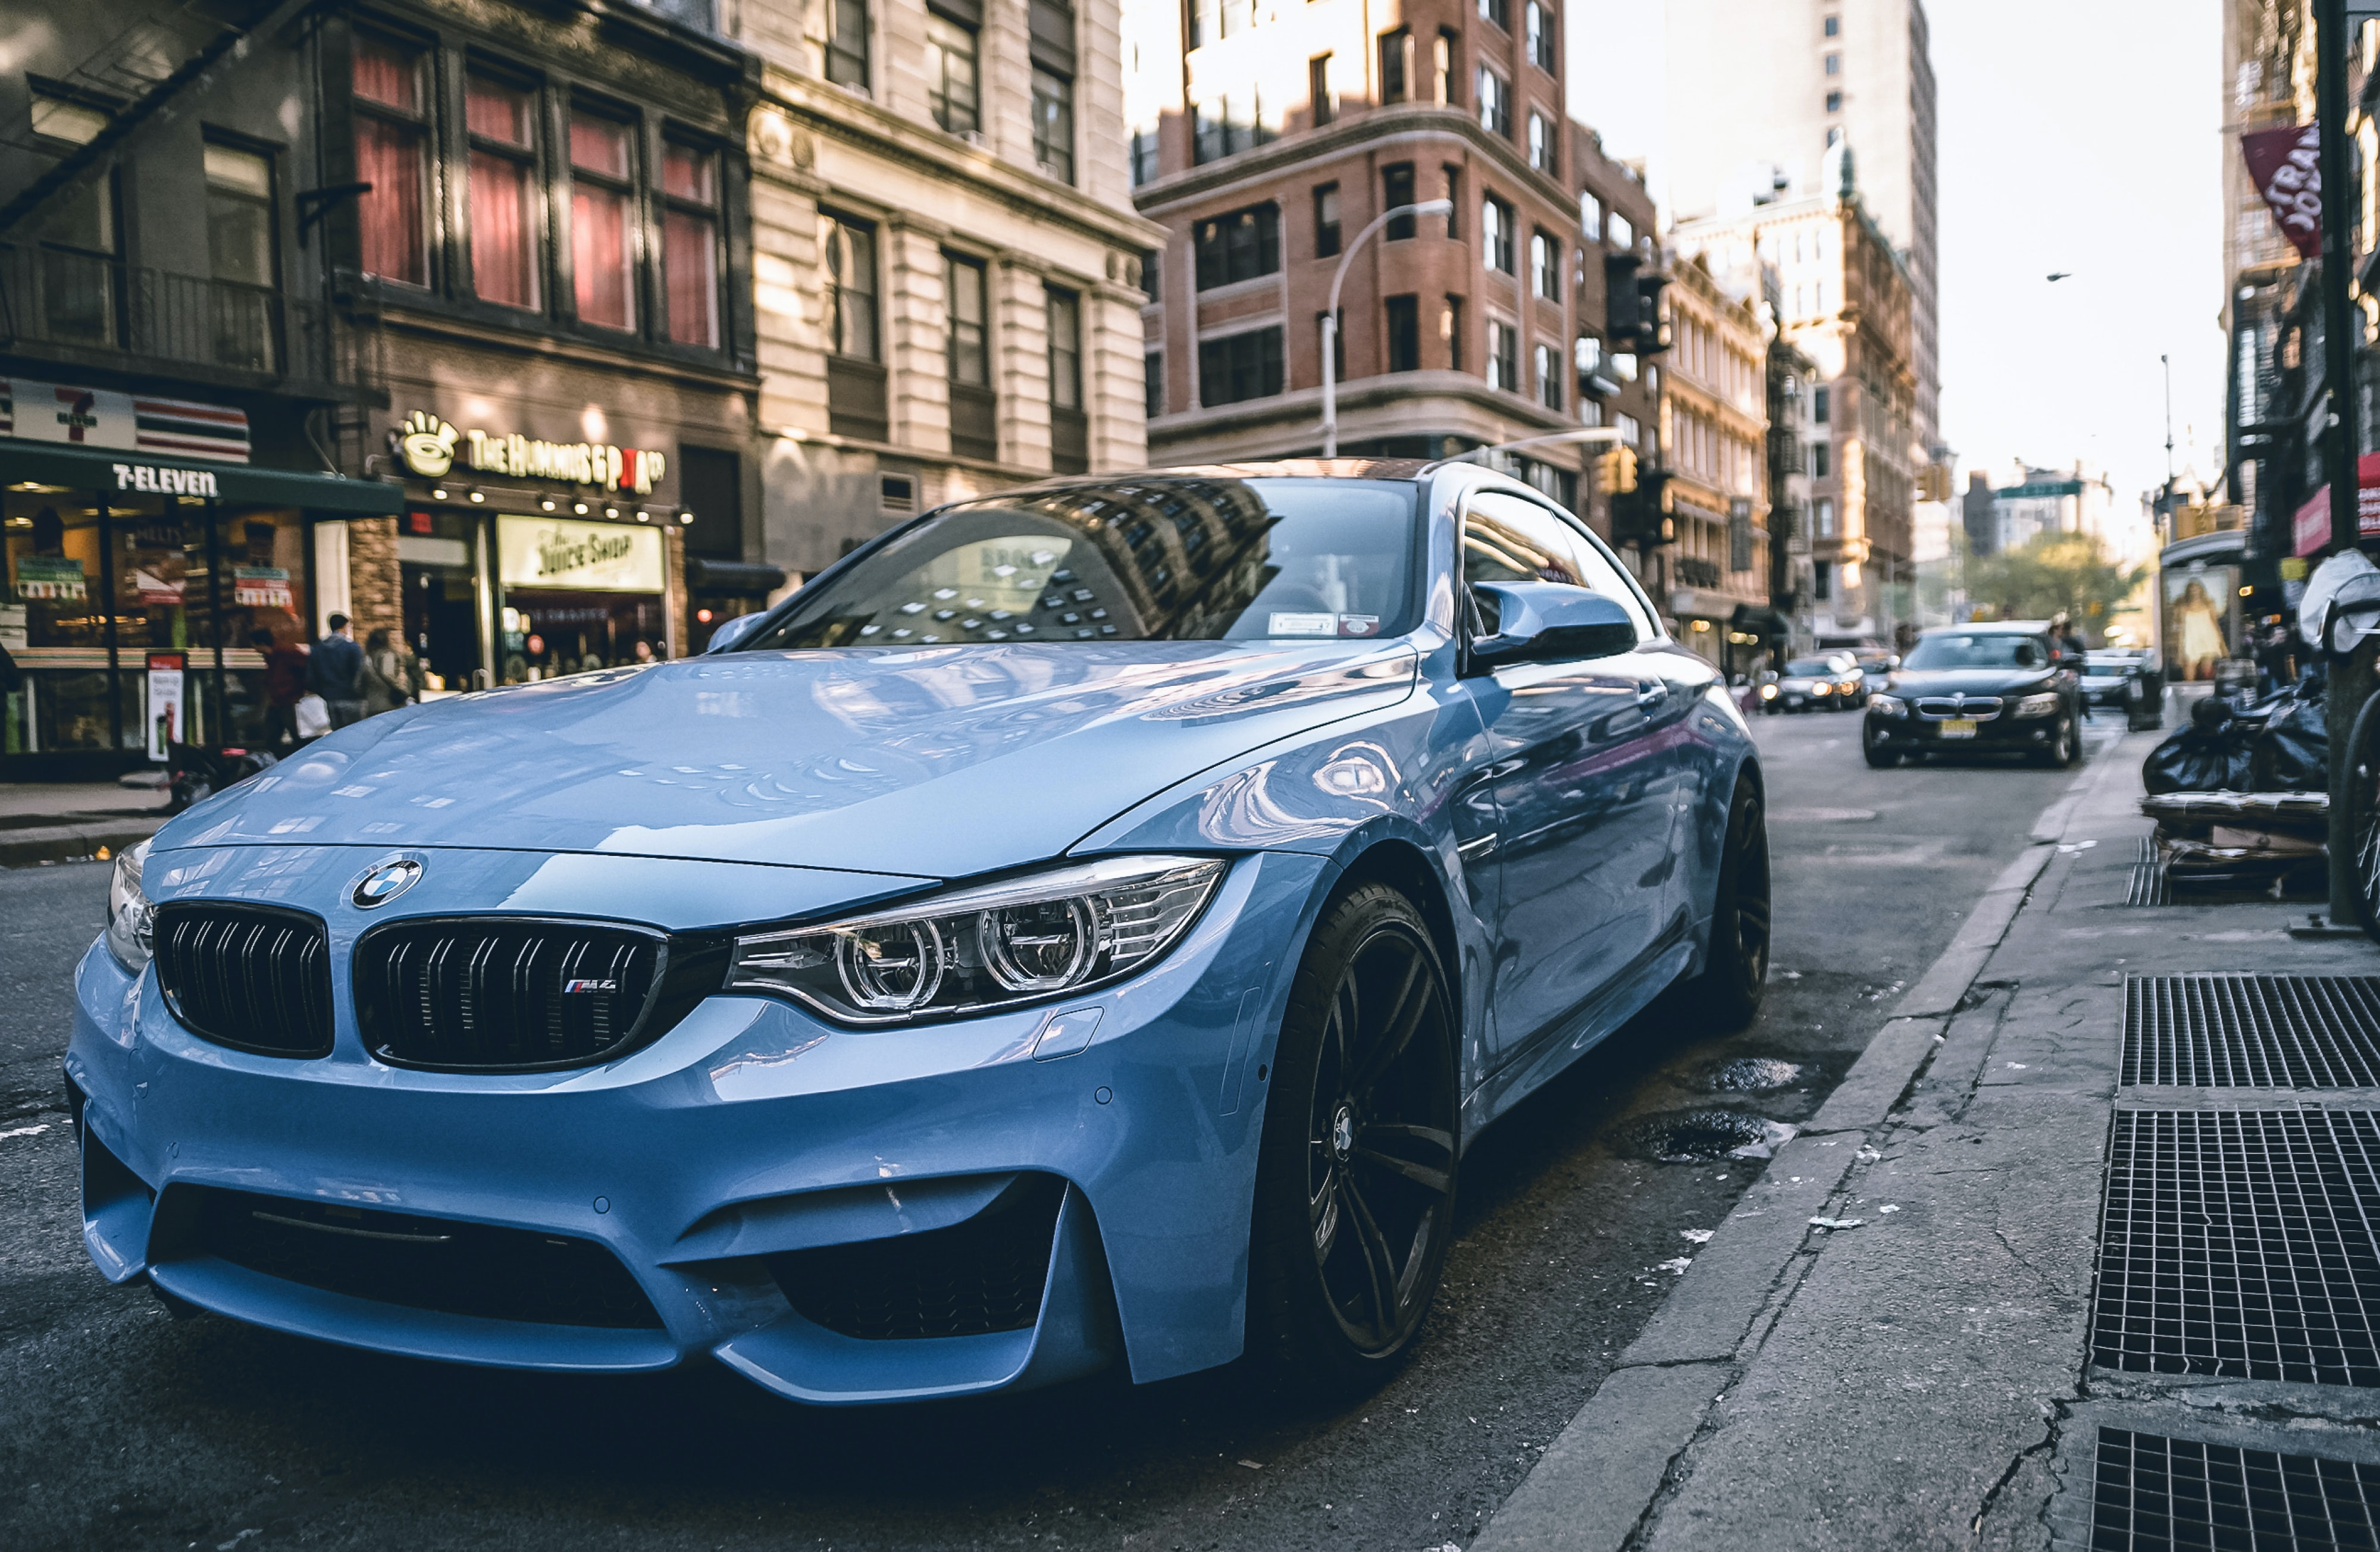 750 Bmw Pictures Hd Download Free Images On Unsplash